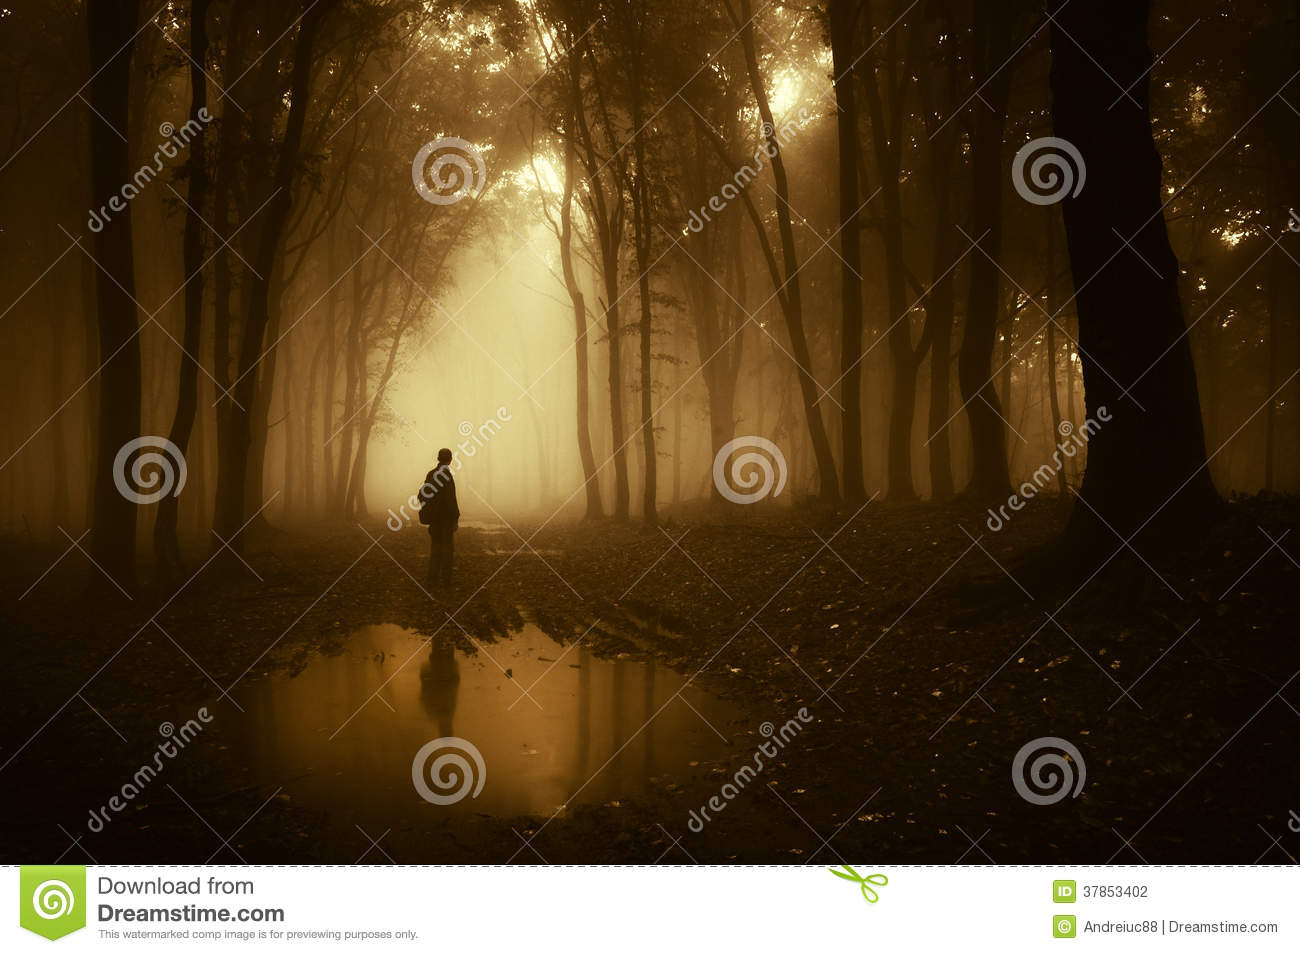 Download Silhouette Of Man Standing Near A Pond In A Dark Creepy Forest With Fog In Autumn Stock Photo - Image of lake, autumn: 37853402